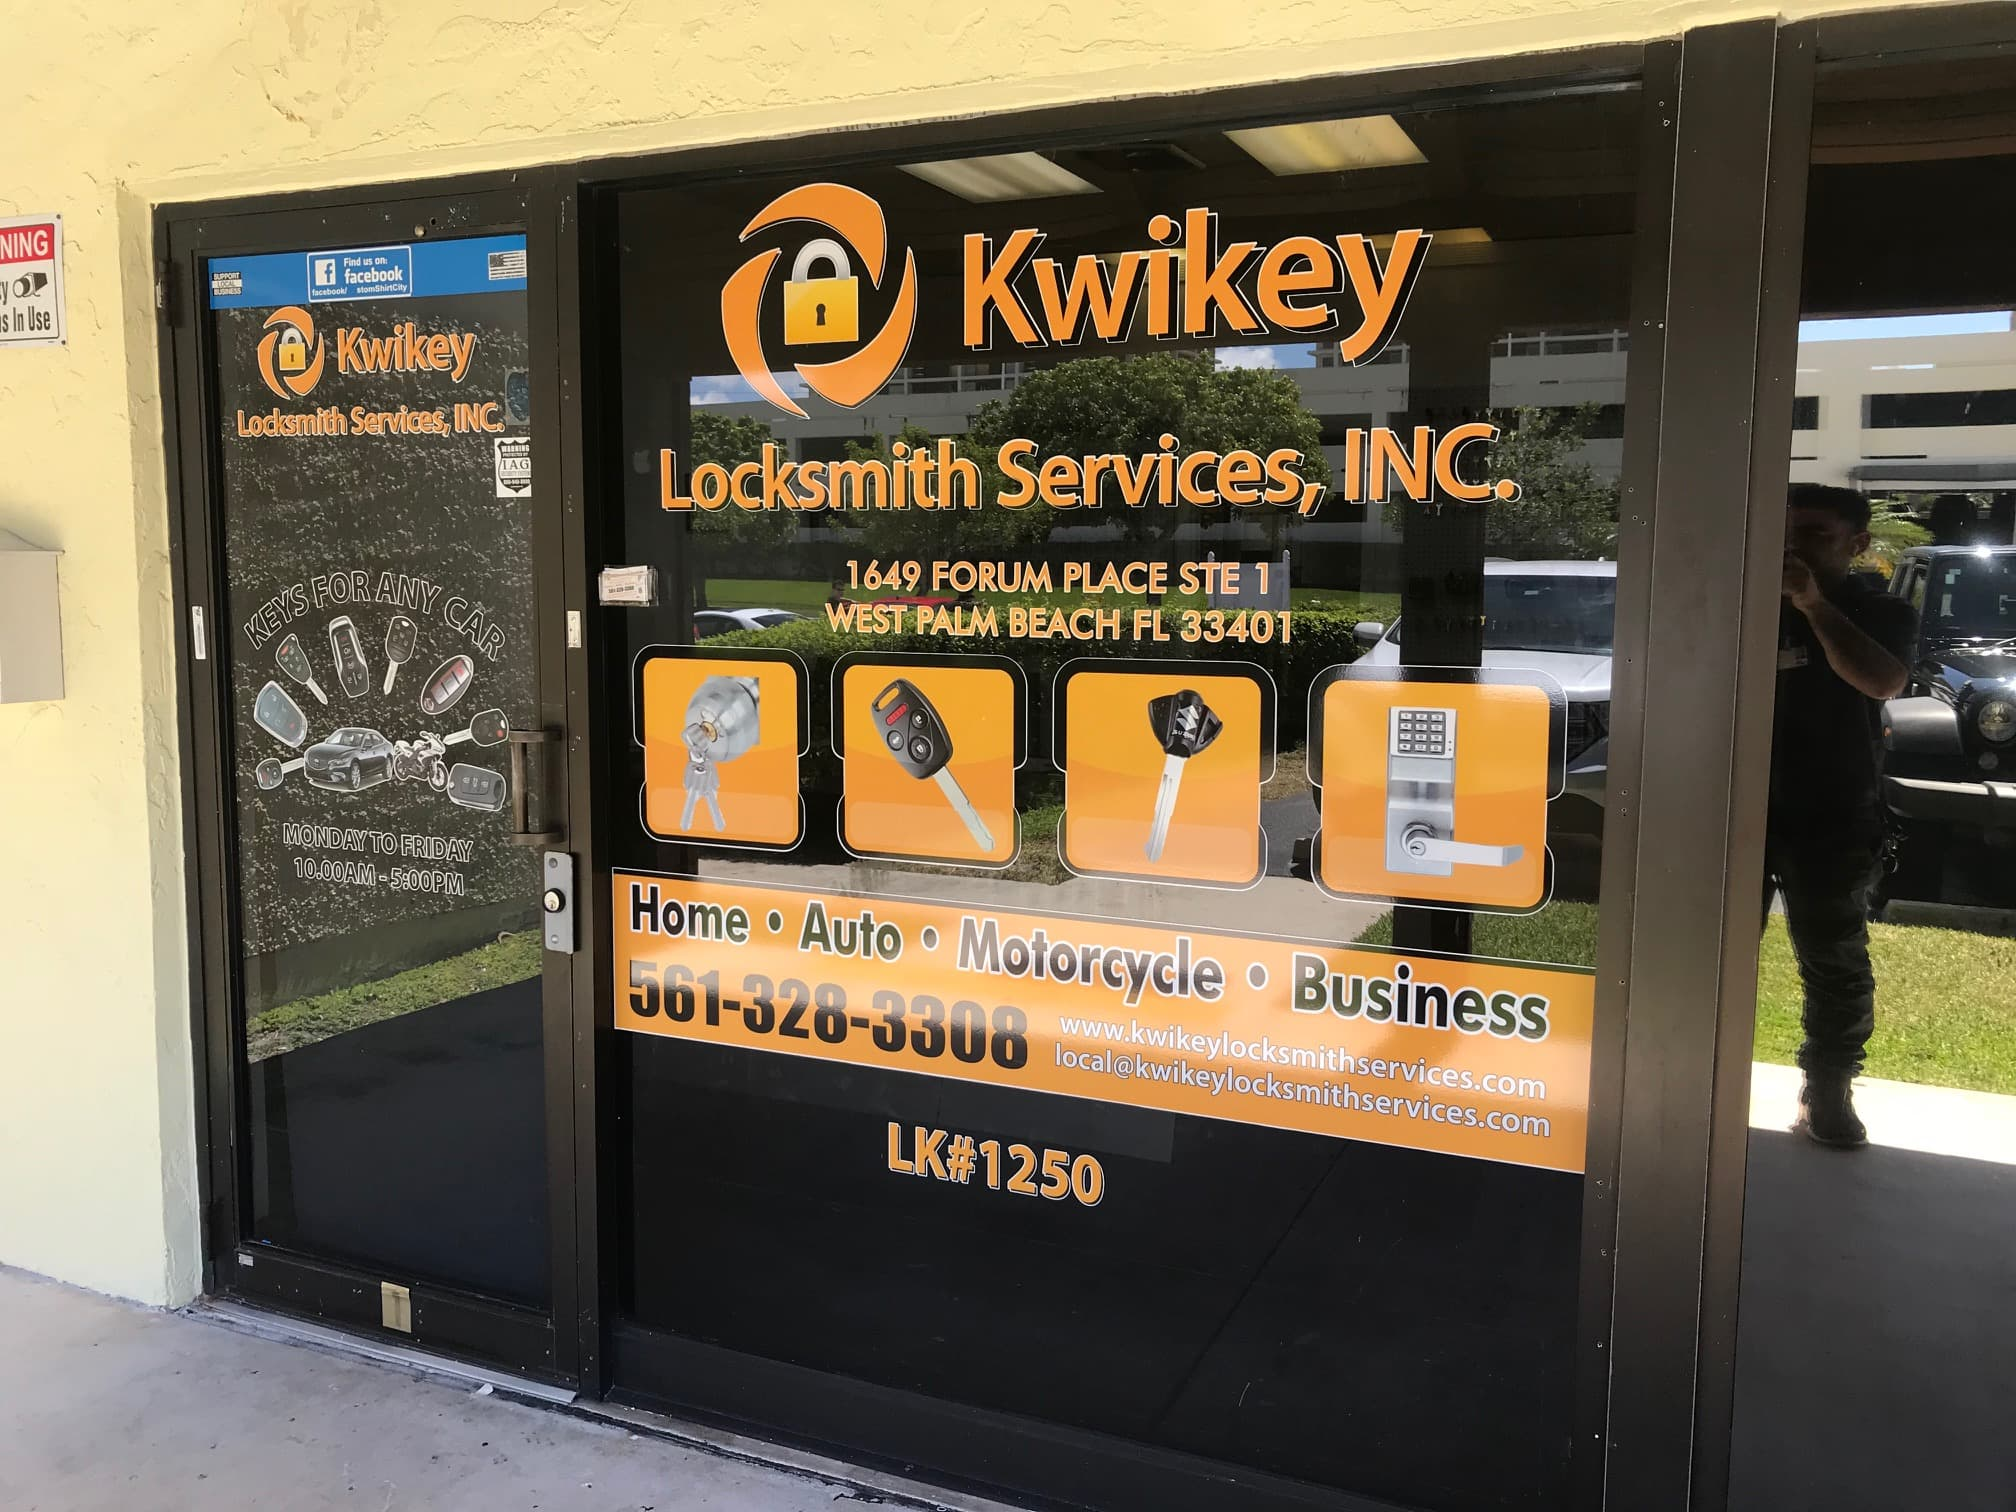 Your Go-To Locksmith - (561) 328-3308